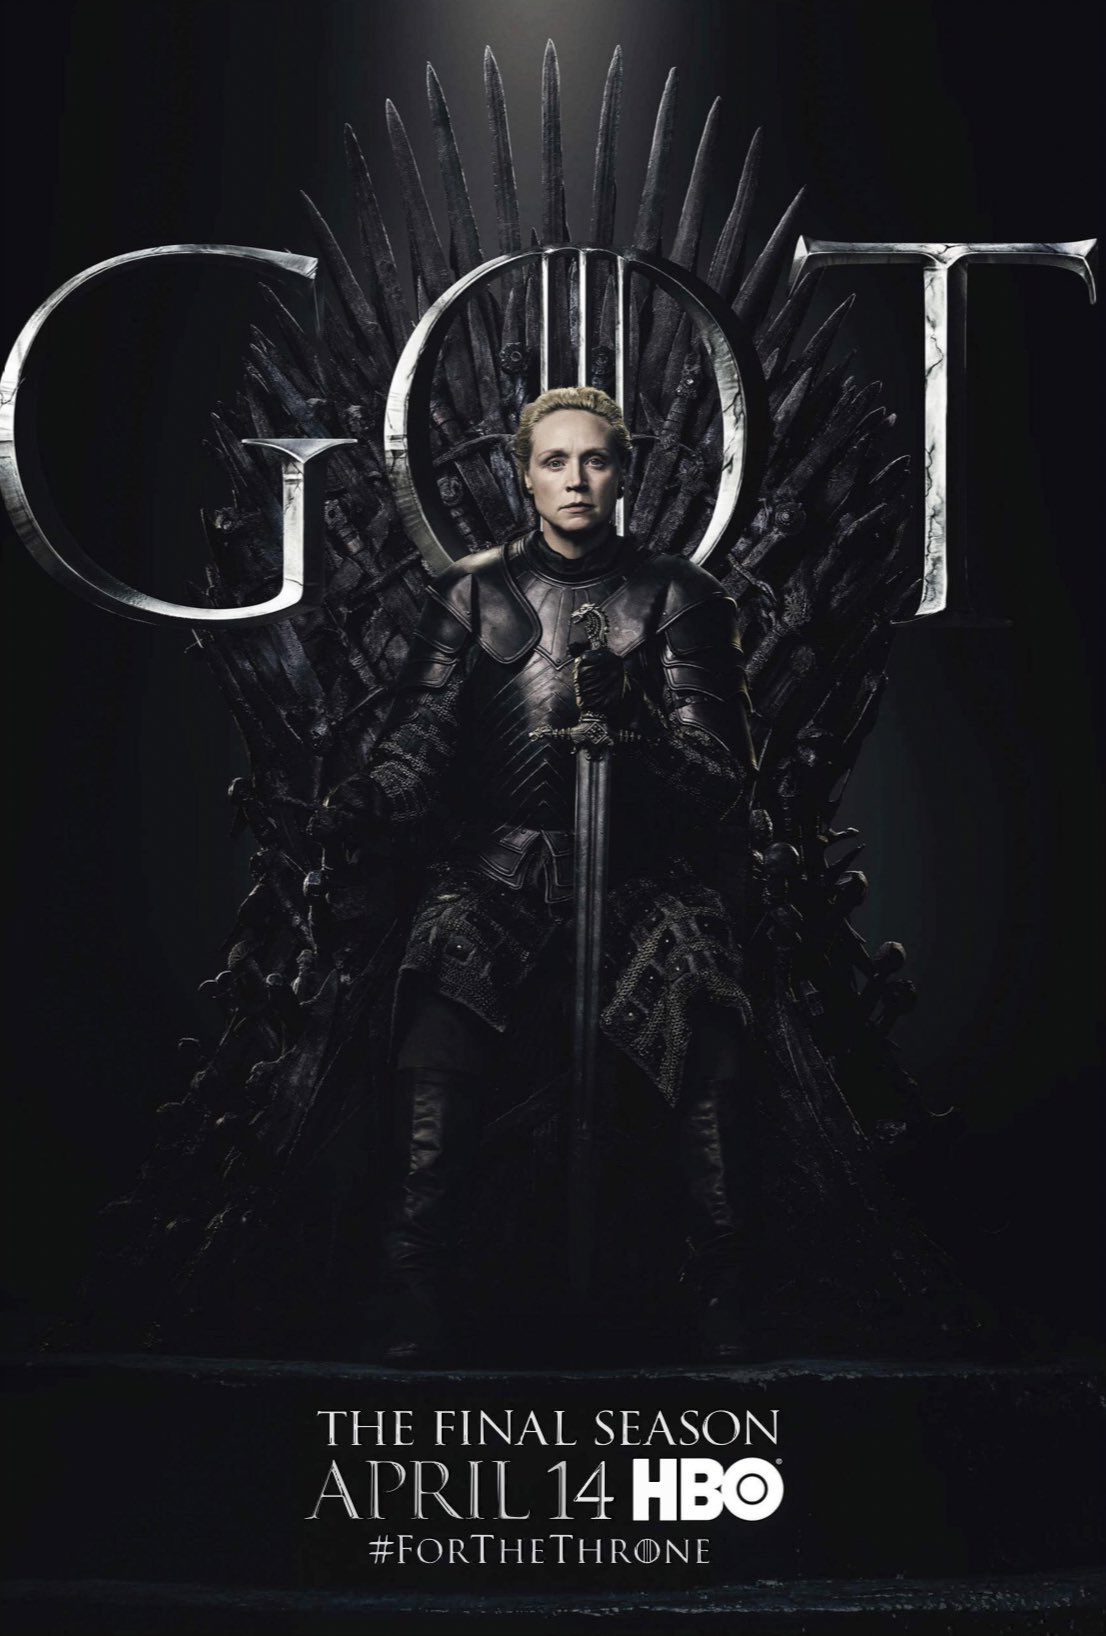 Iron Throne Poster - Brienne of Tarth